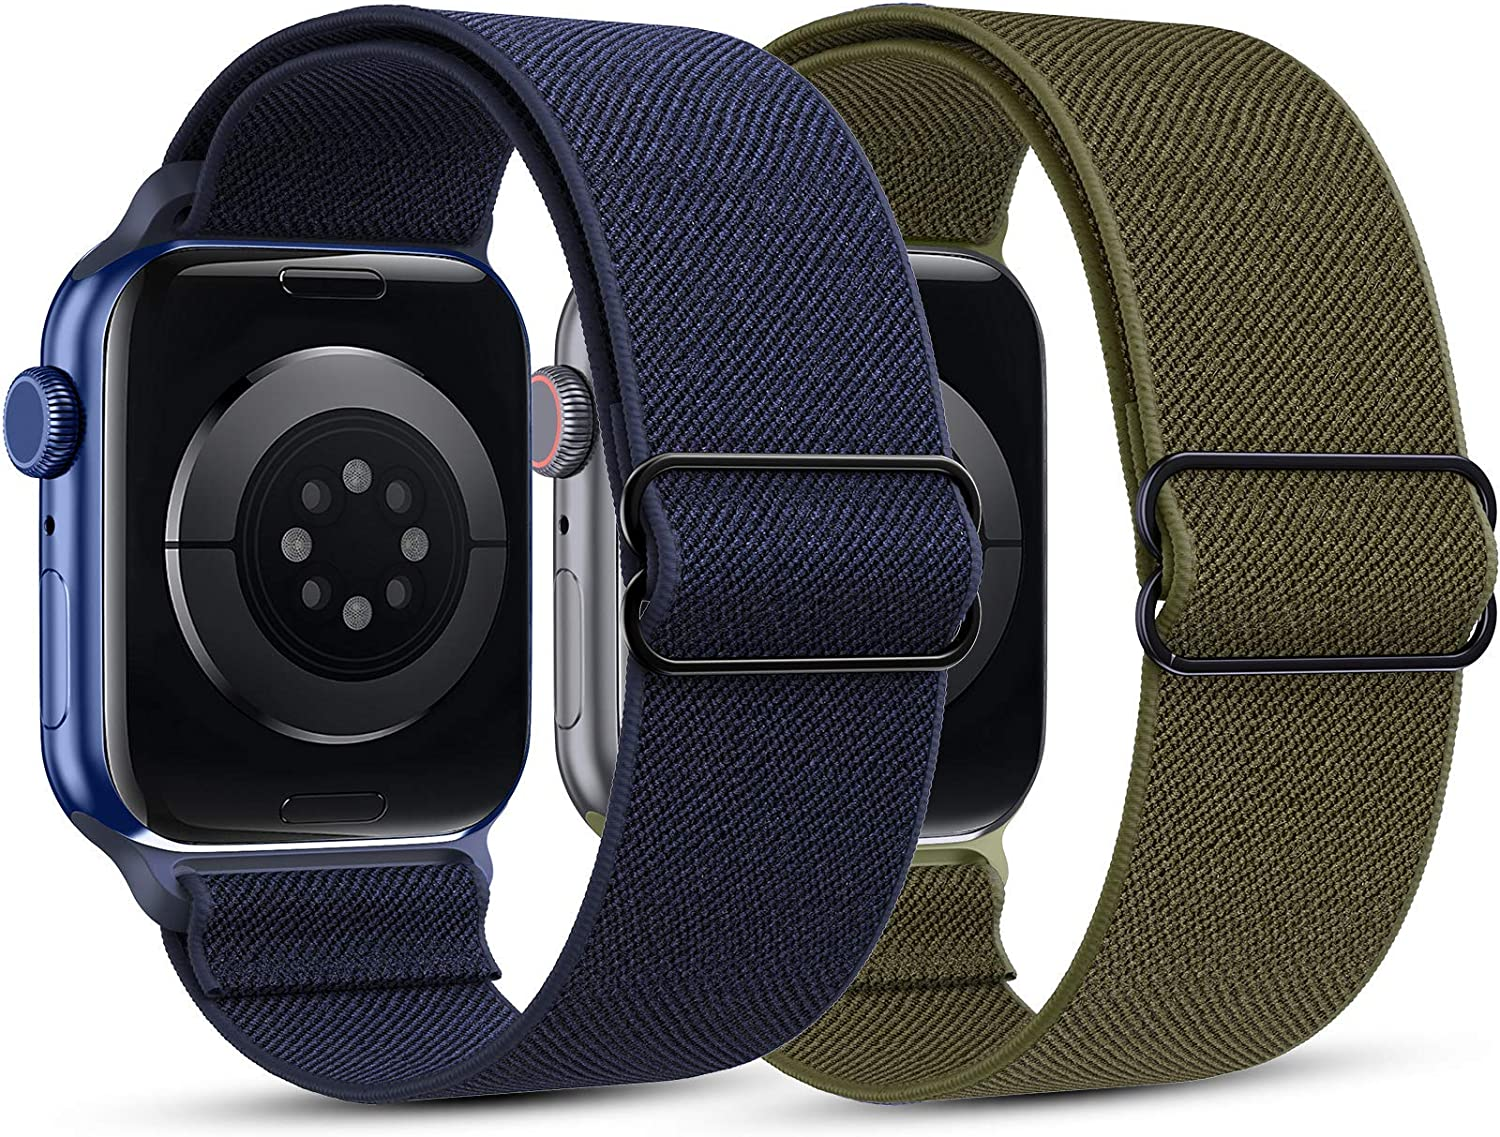 HAPAW [2 Pack] Elastic Nylon Bands Compatible with Apple Watch Bands 38/40/42/44mm, Soft Adjustable Stretchy Solo Loop Breathable Strap Replacement Wristband Women Men for iWatch